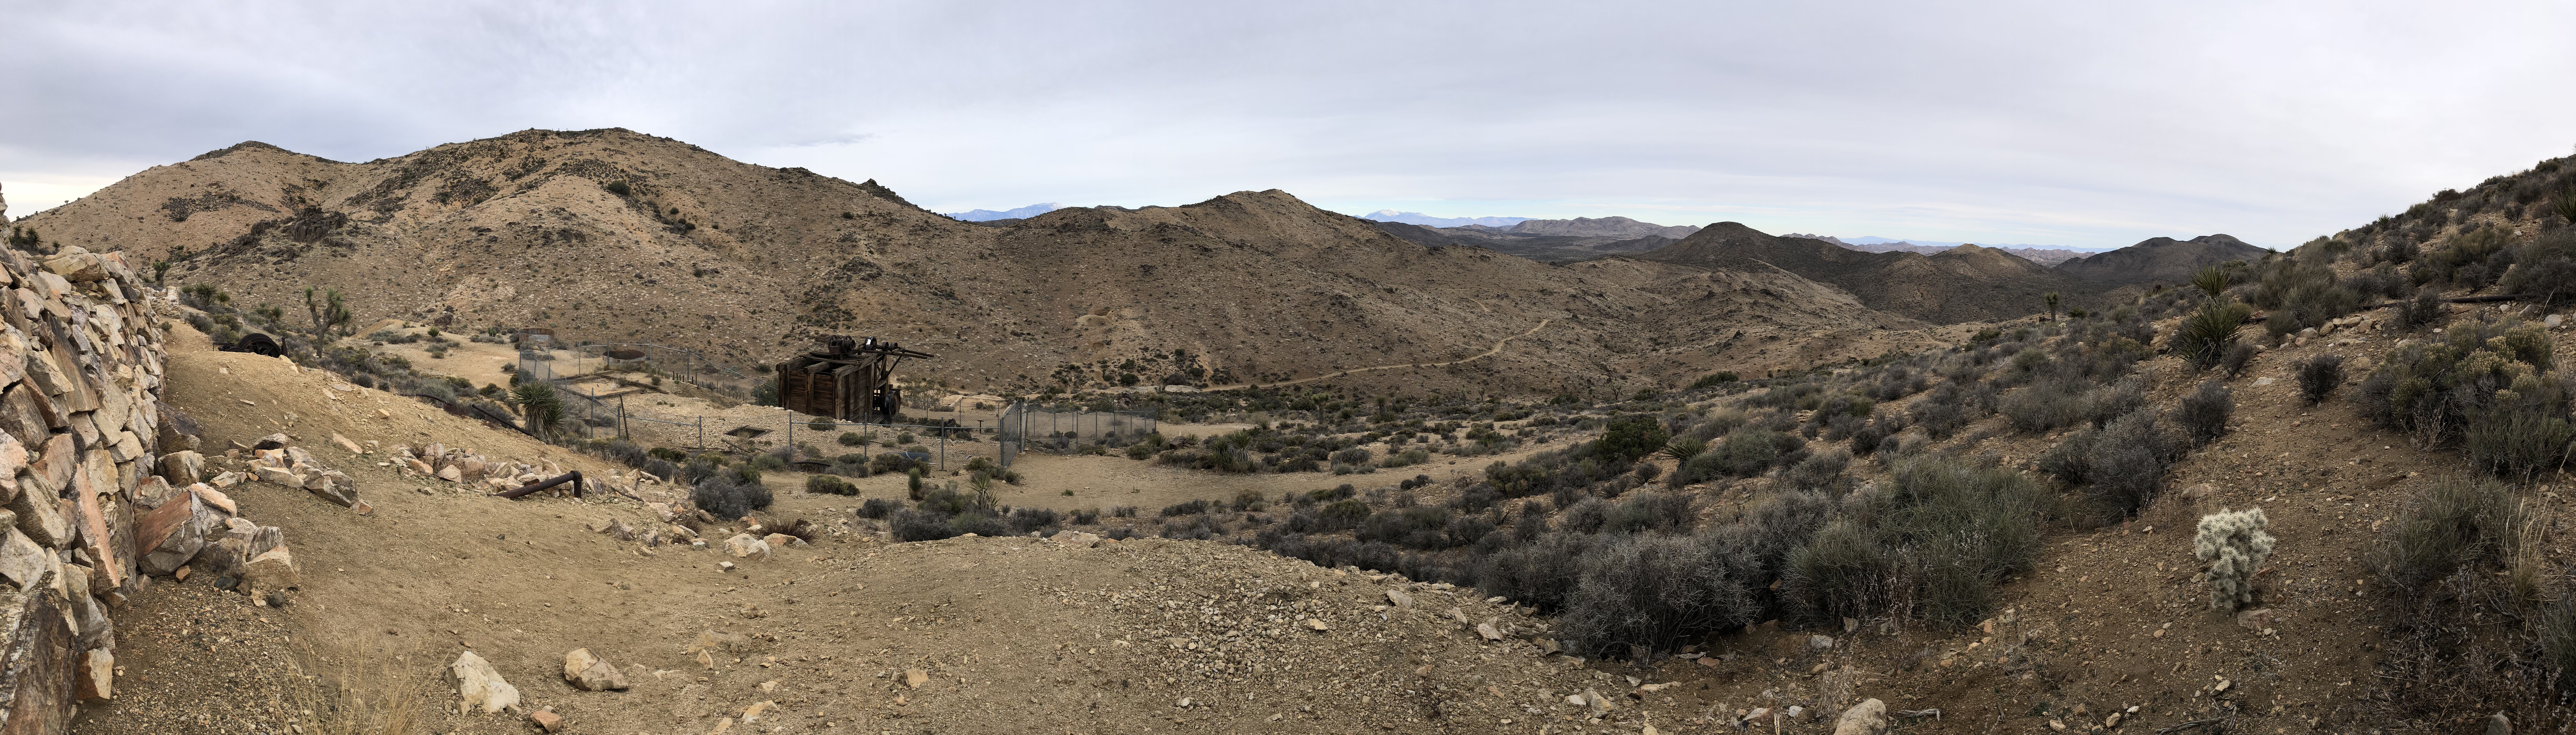 a view of an abandoned mine